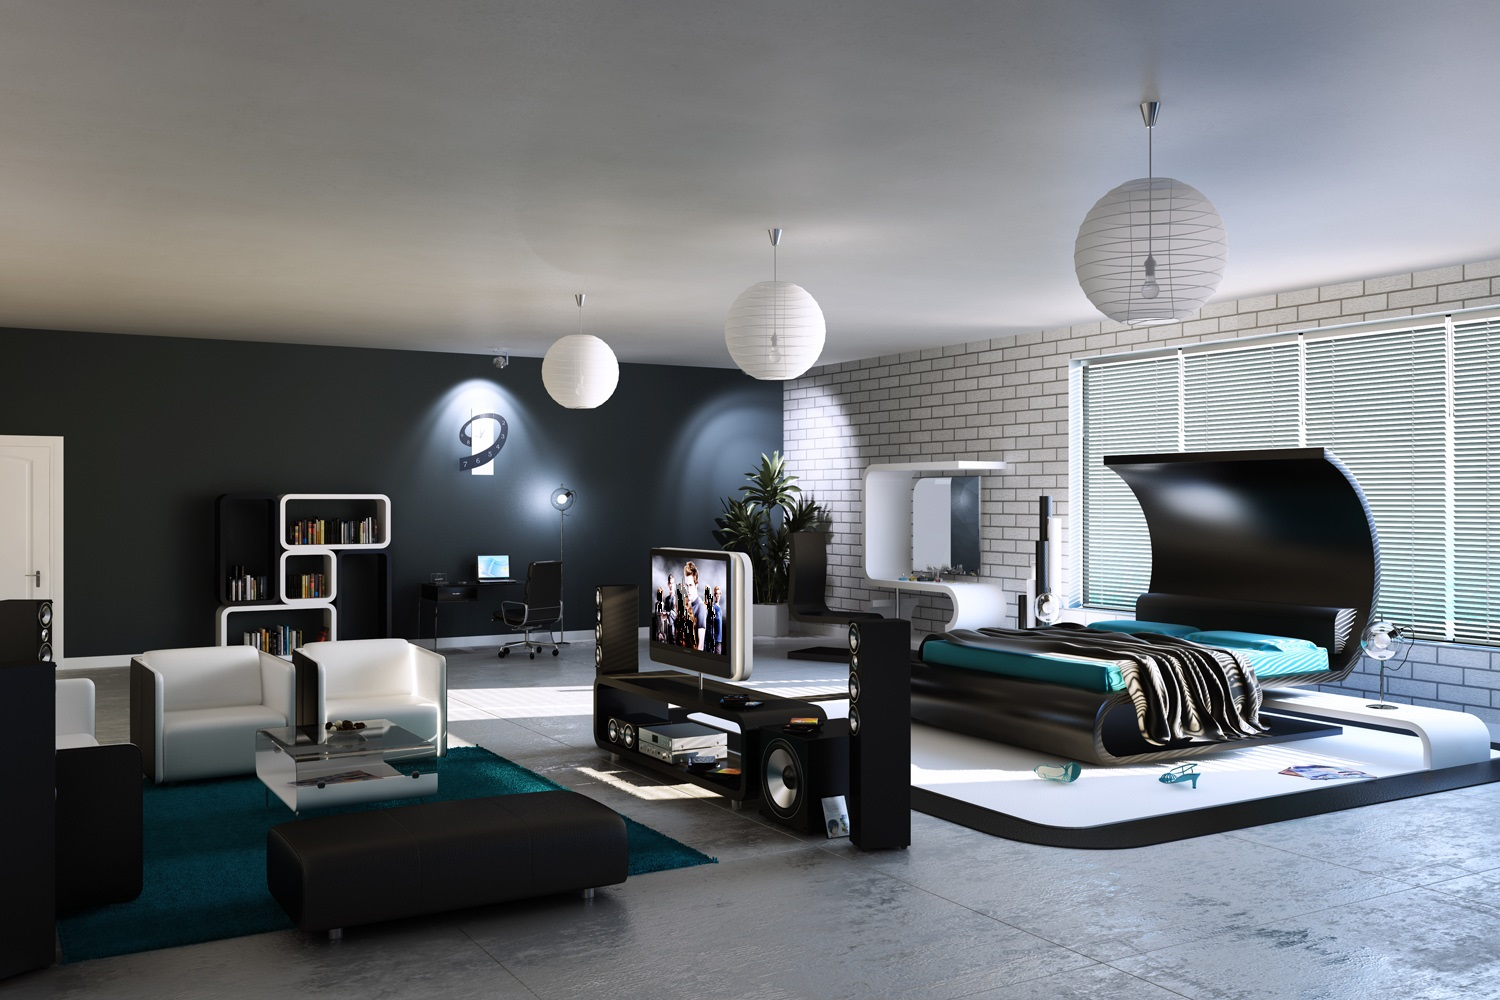 Chambre Moderne Les Chambres Moderne